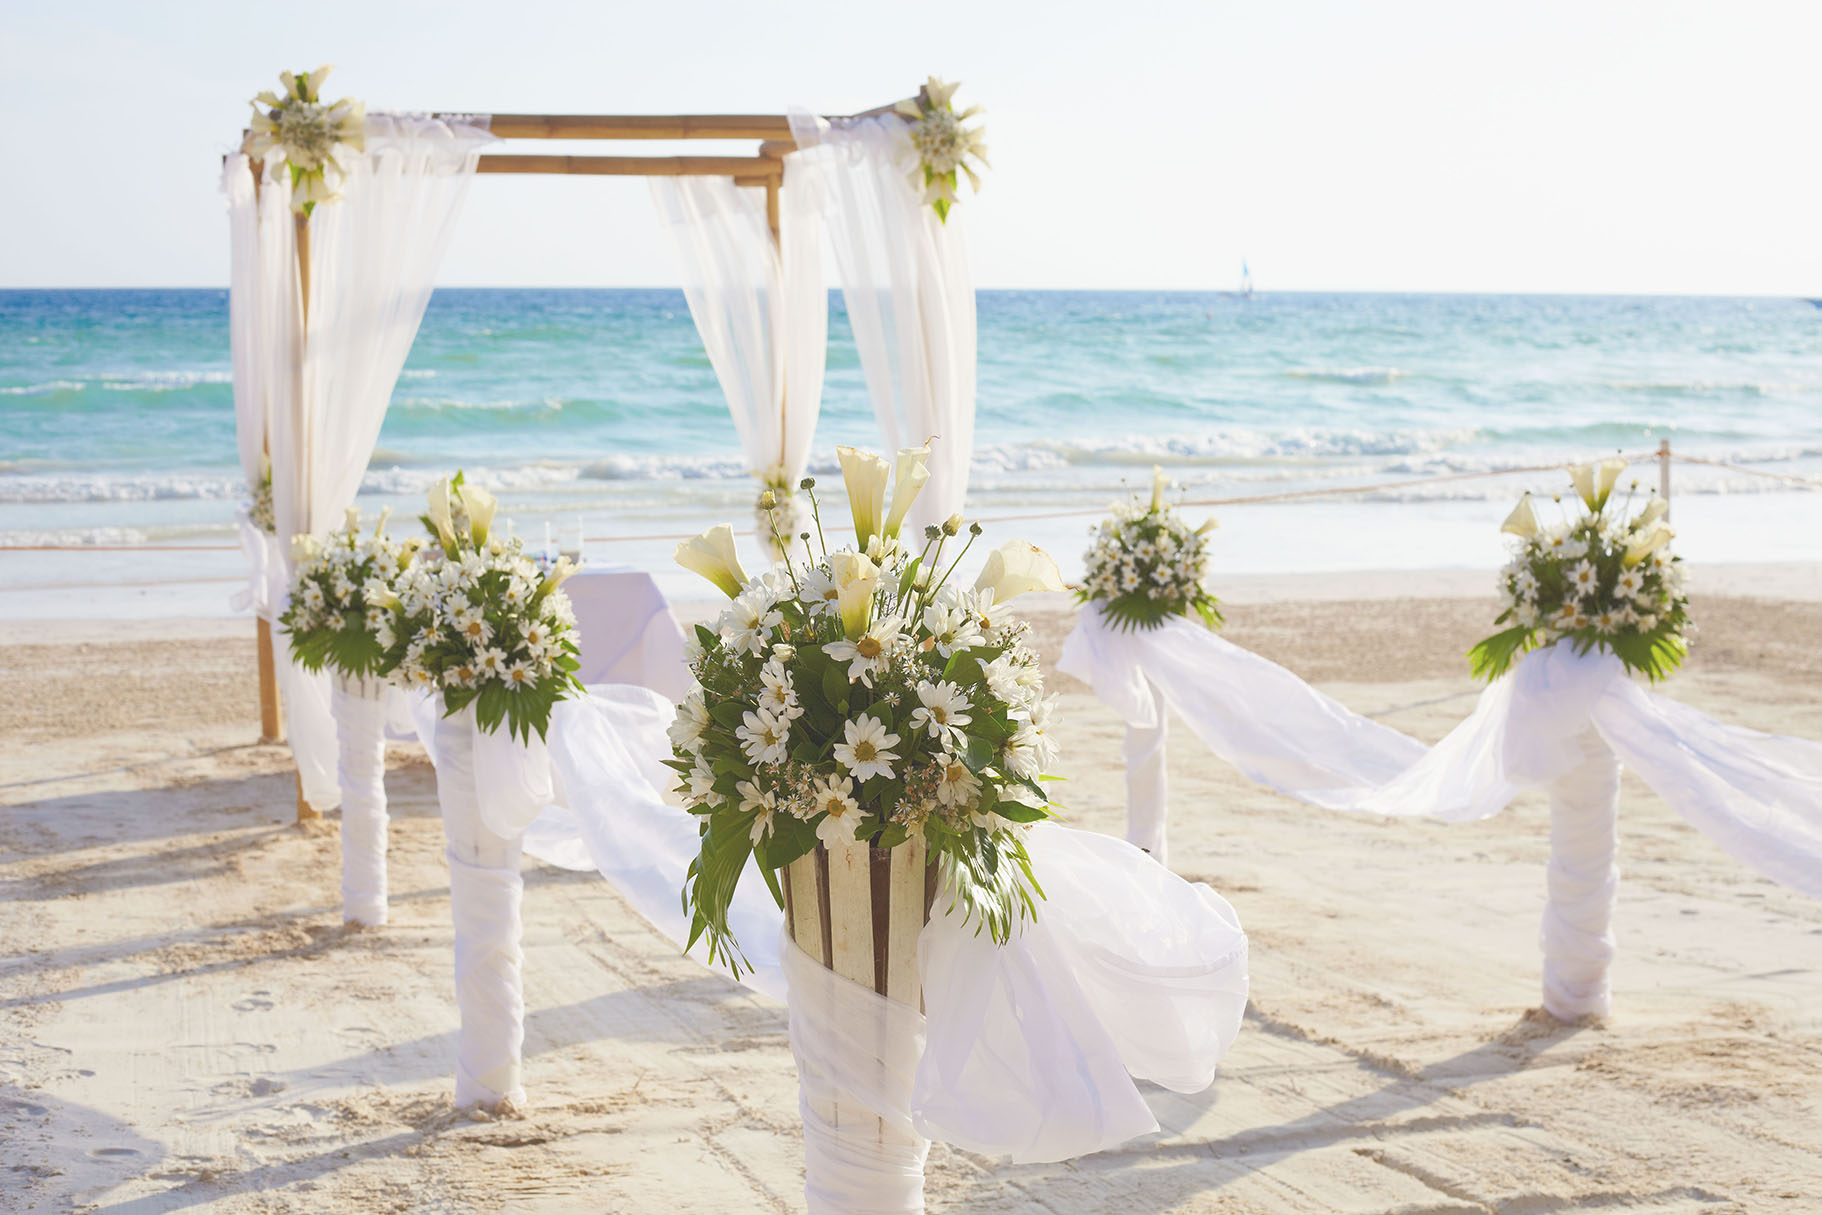 Wedding Decoration Ideas: We bring you decor trends for 2019-2020